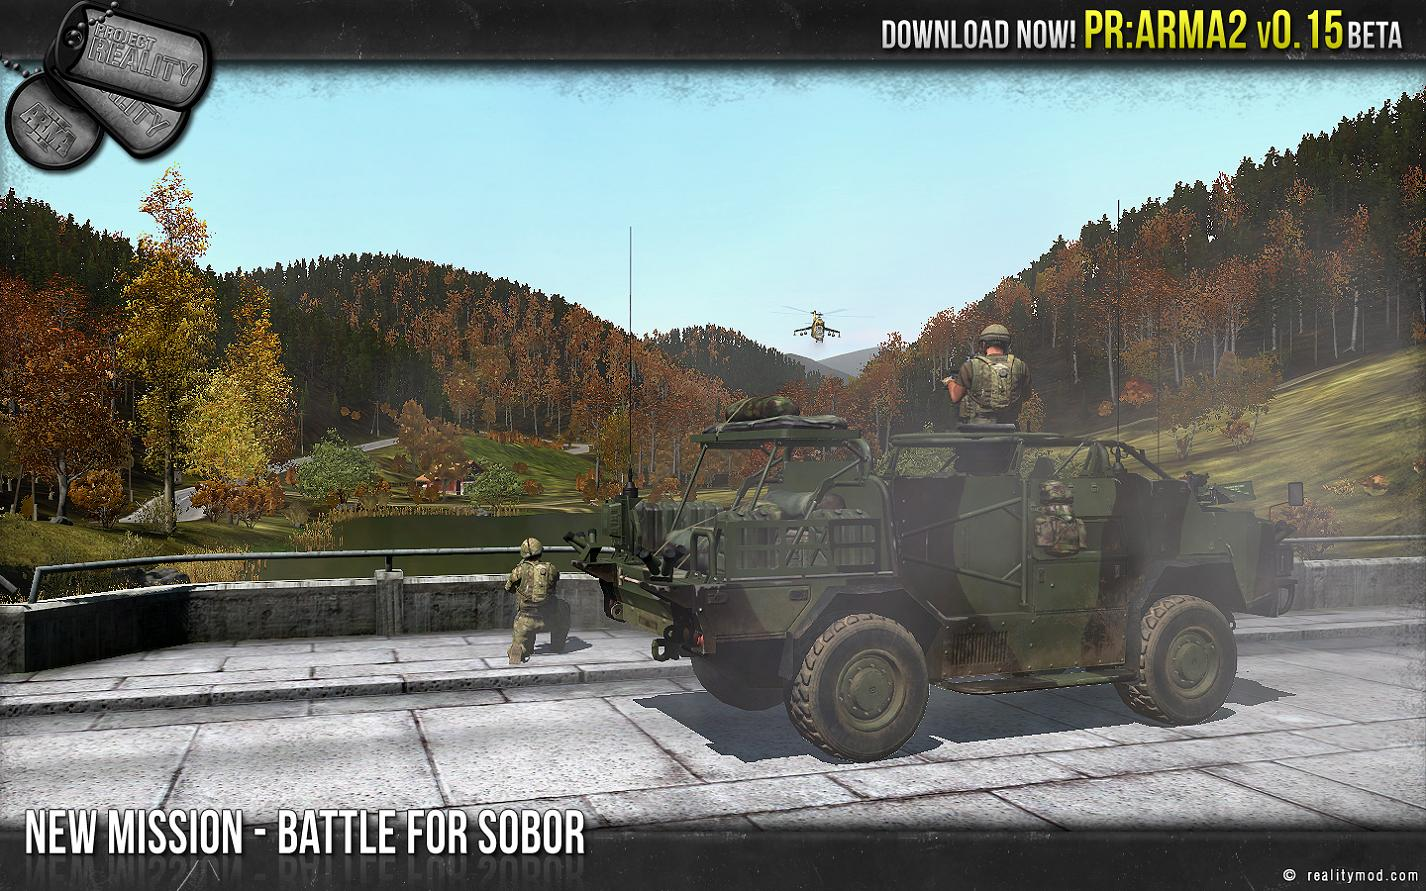 new_mission_battle_for_sobor.jpg